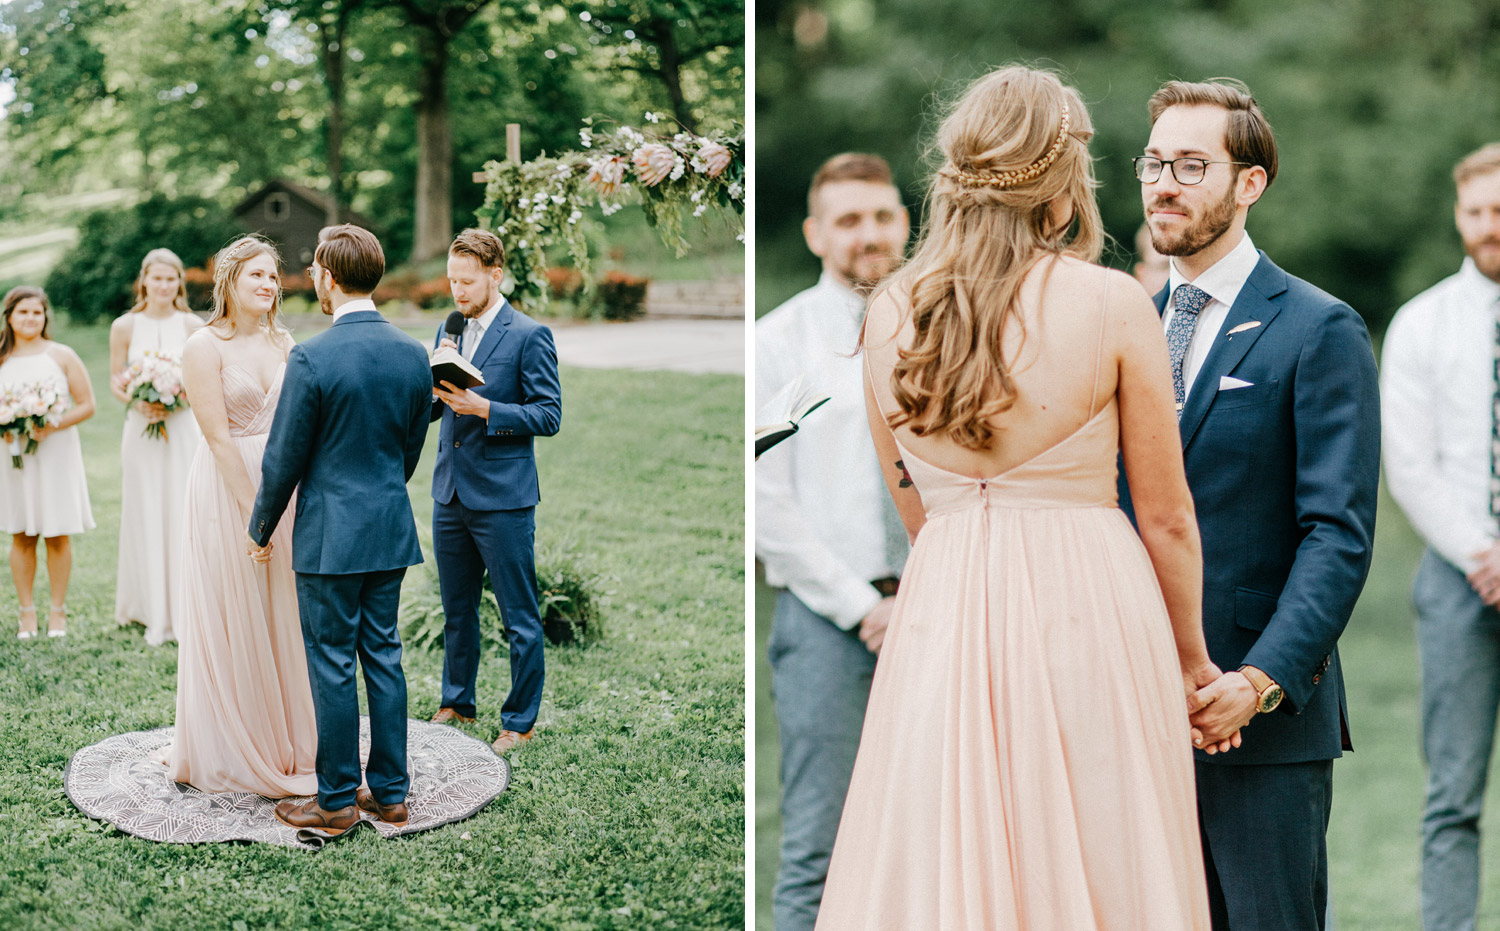 Outdoor ceremony at the Des Moines Art Center by geneoh photography